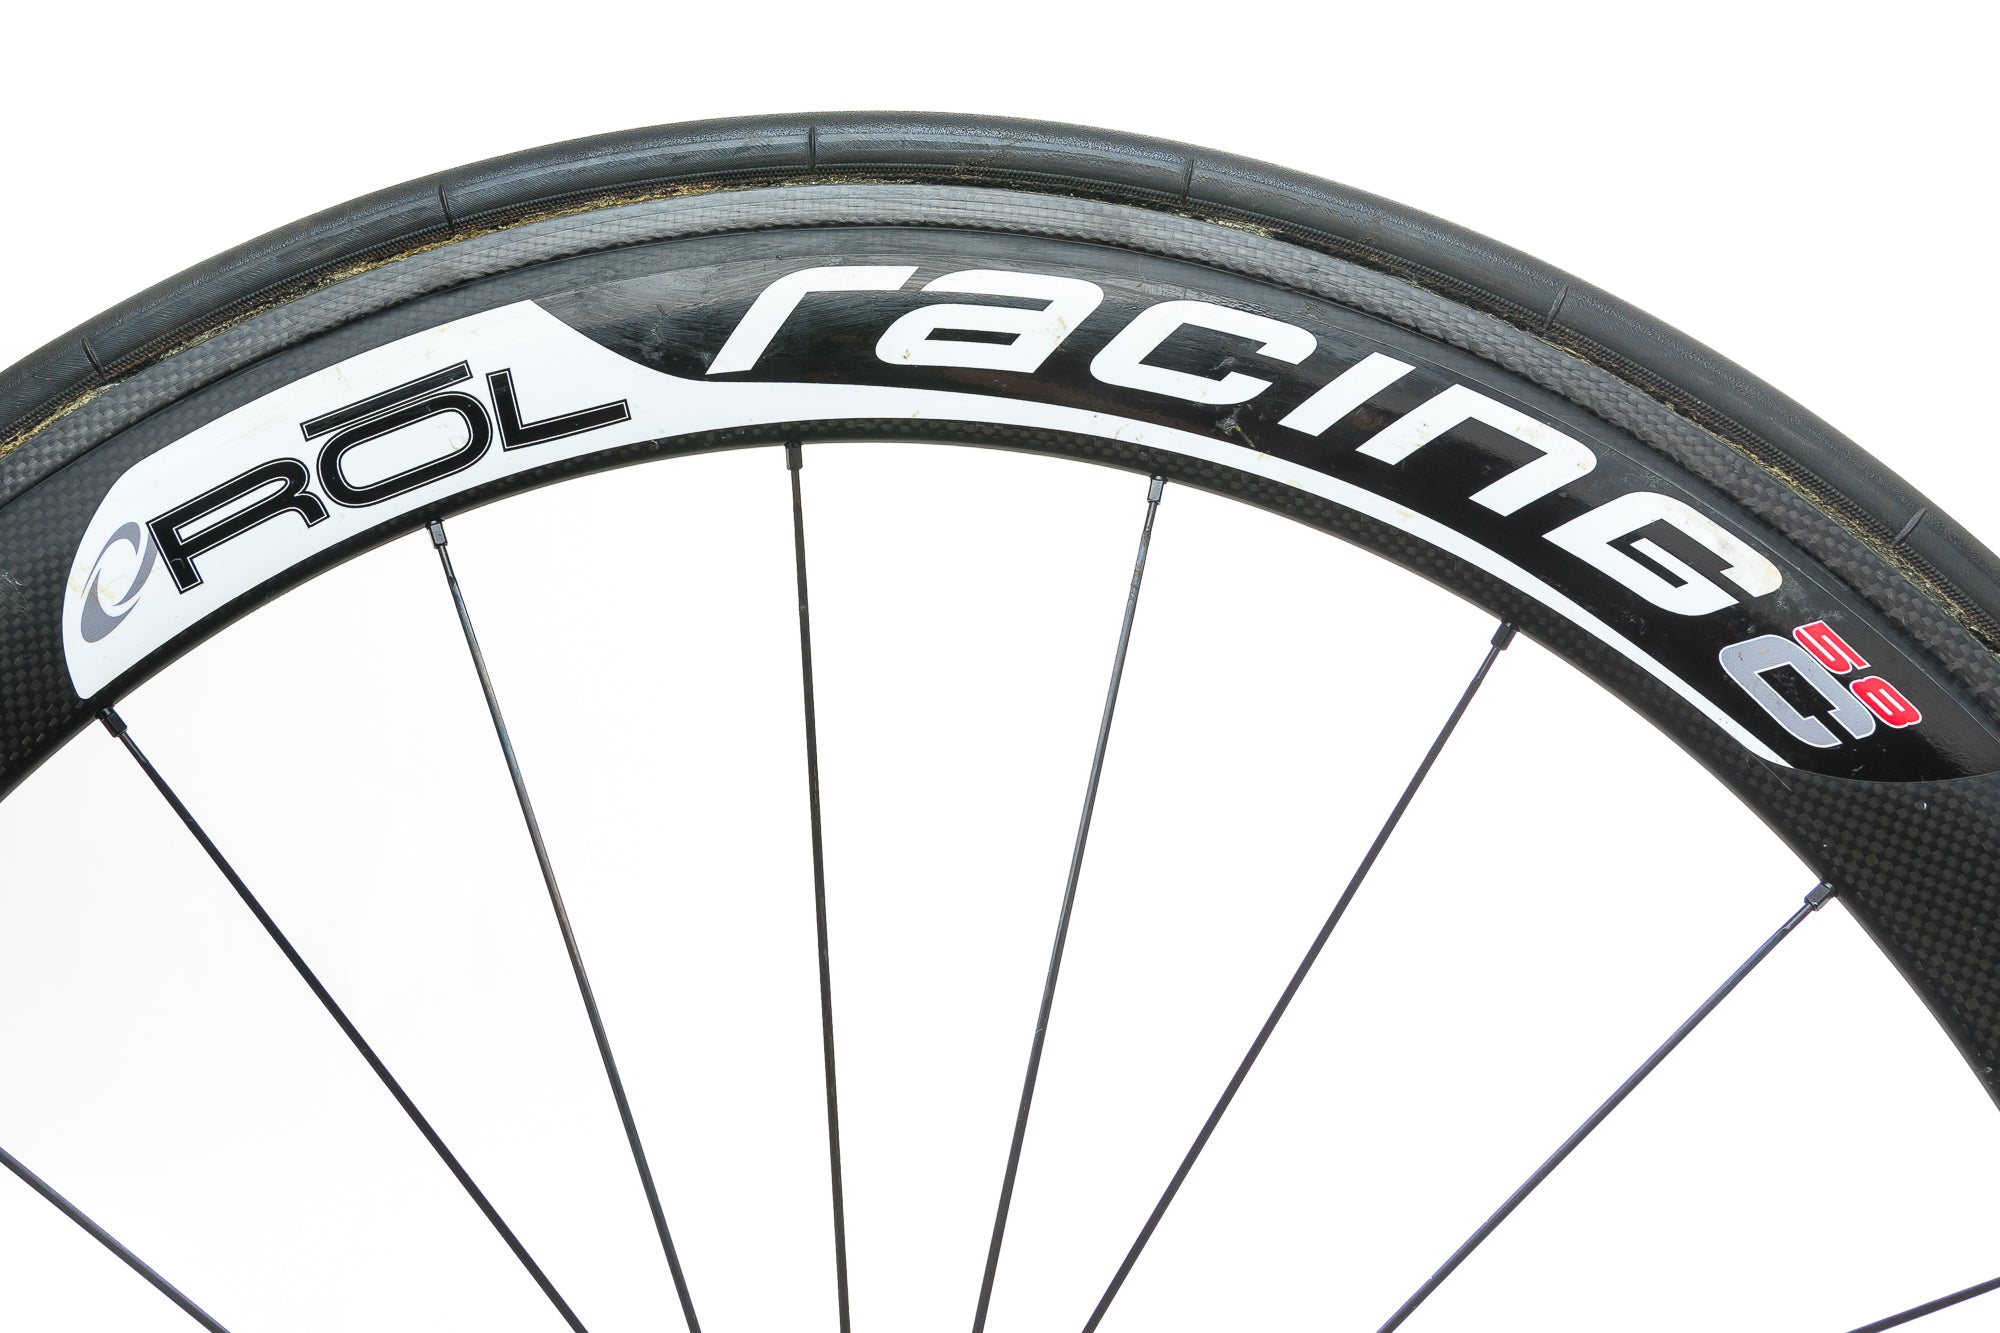 ROL Racing 58C Carbon Tubular 700c Wheelset